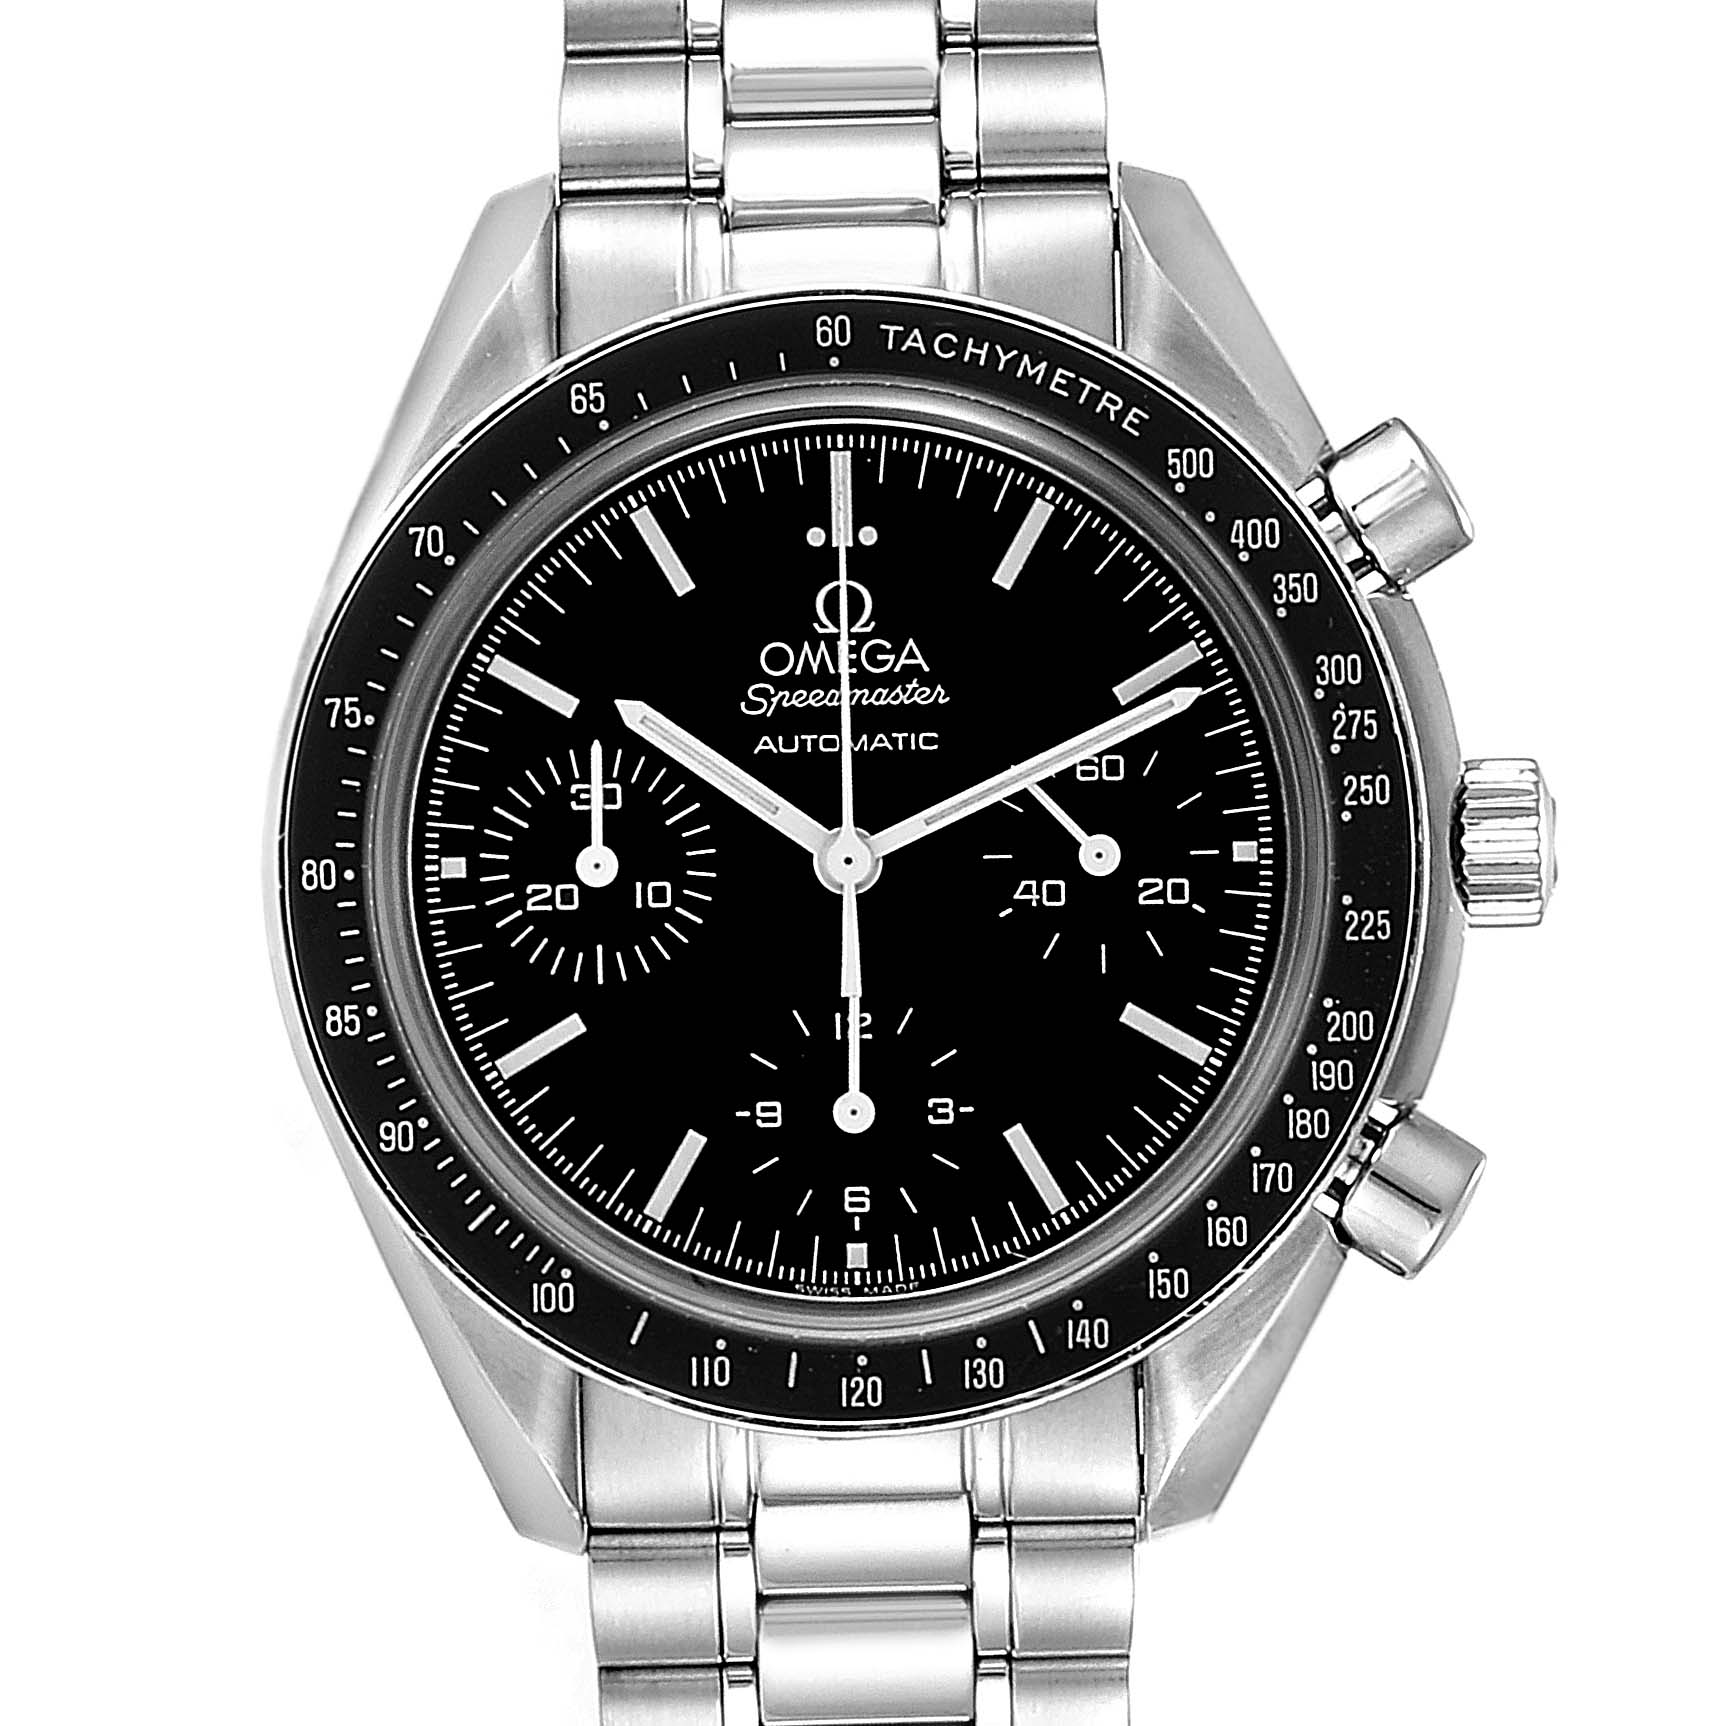 Omega Speedmaster Chrono Reduced Automatic Steel Watch 3539.50.00 Card